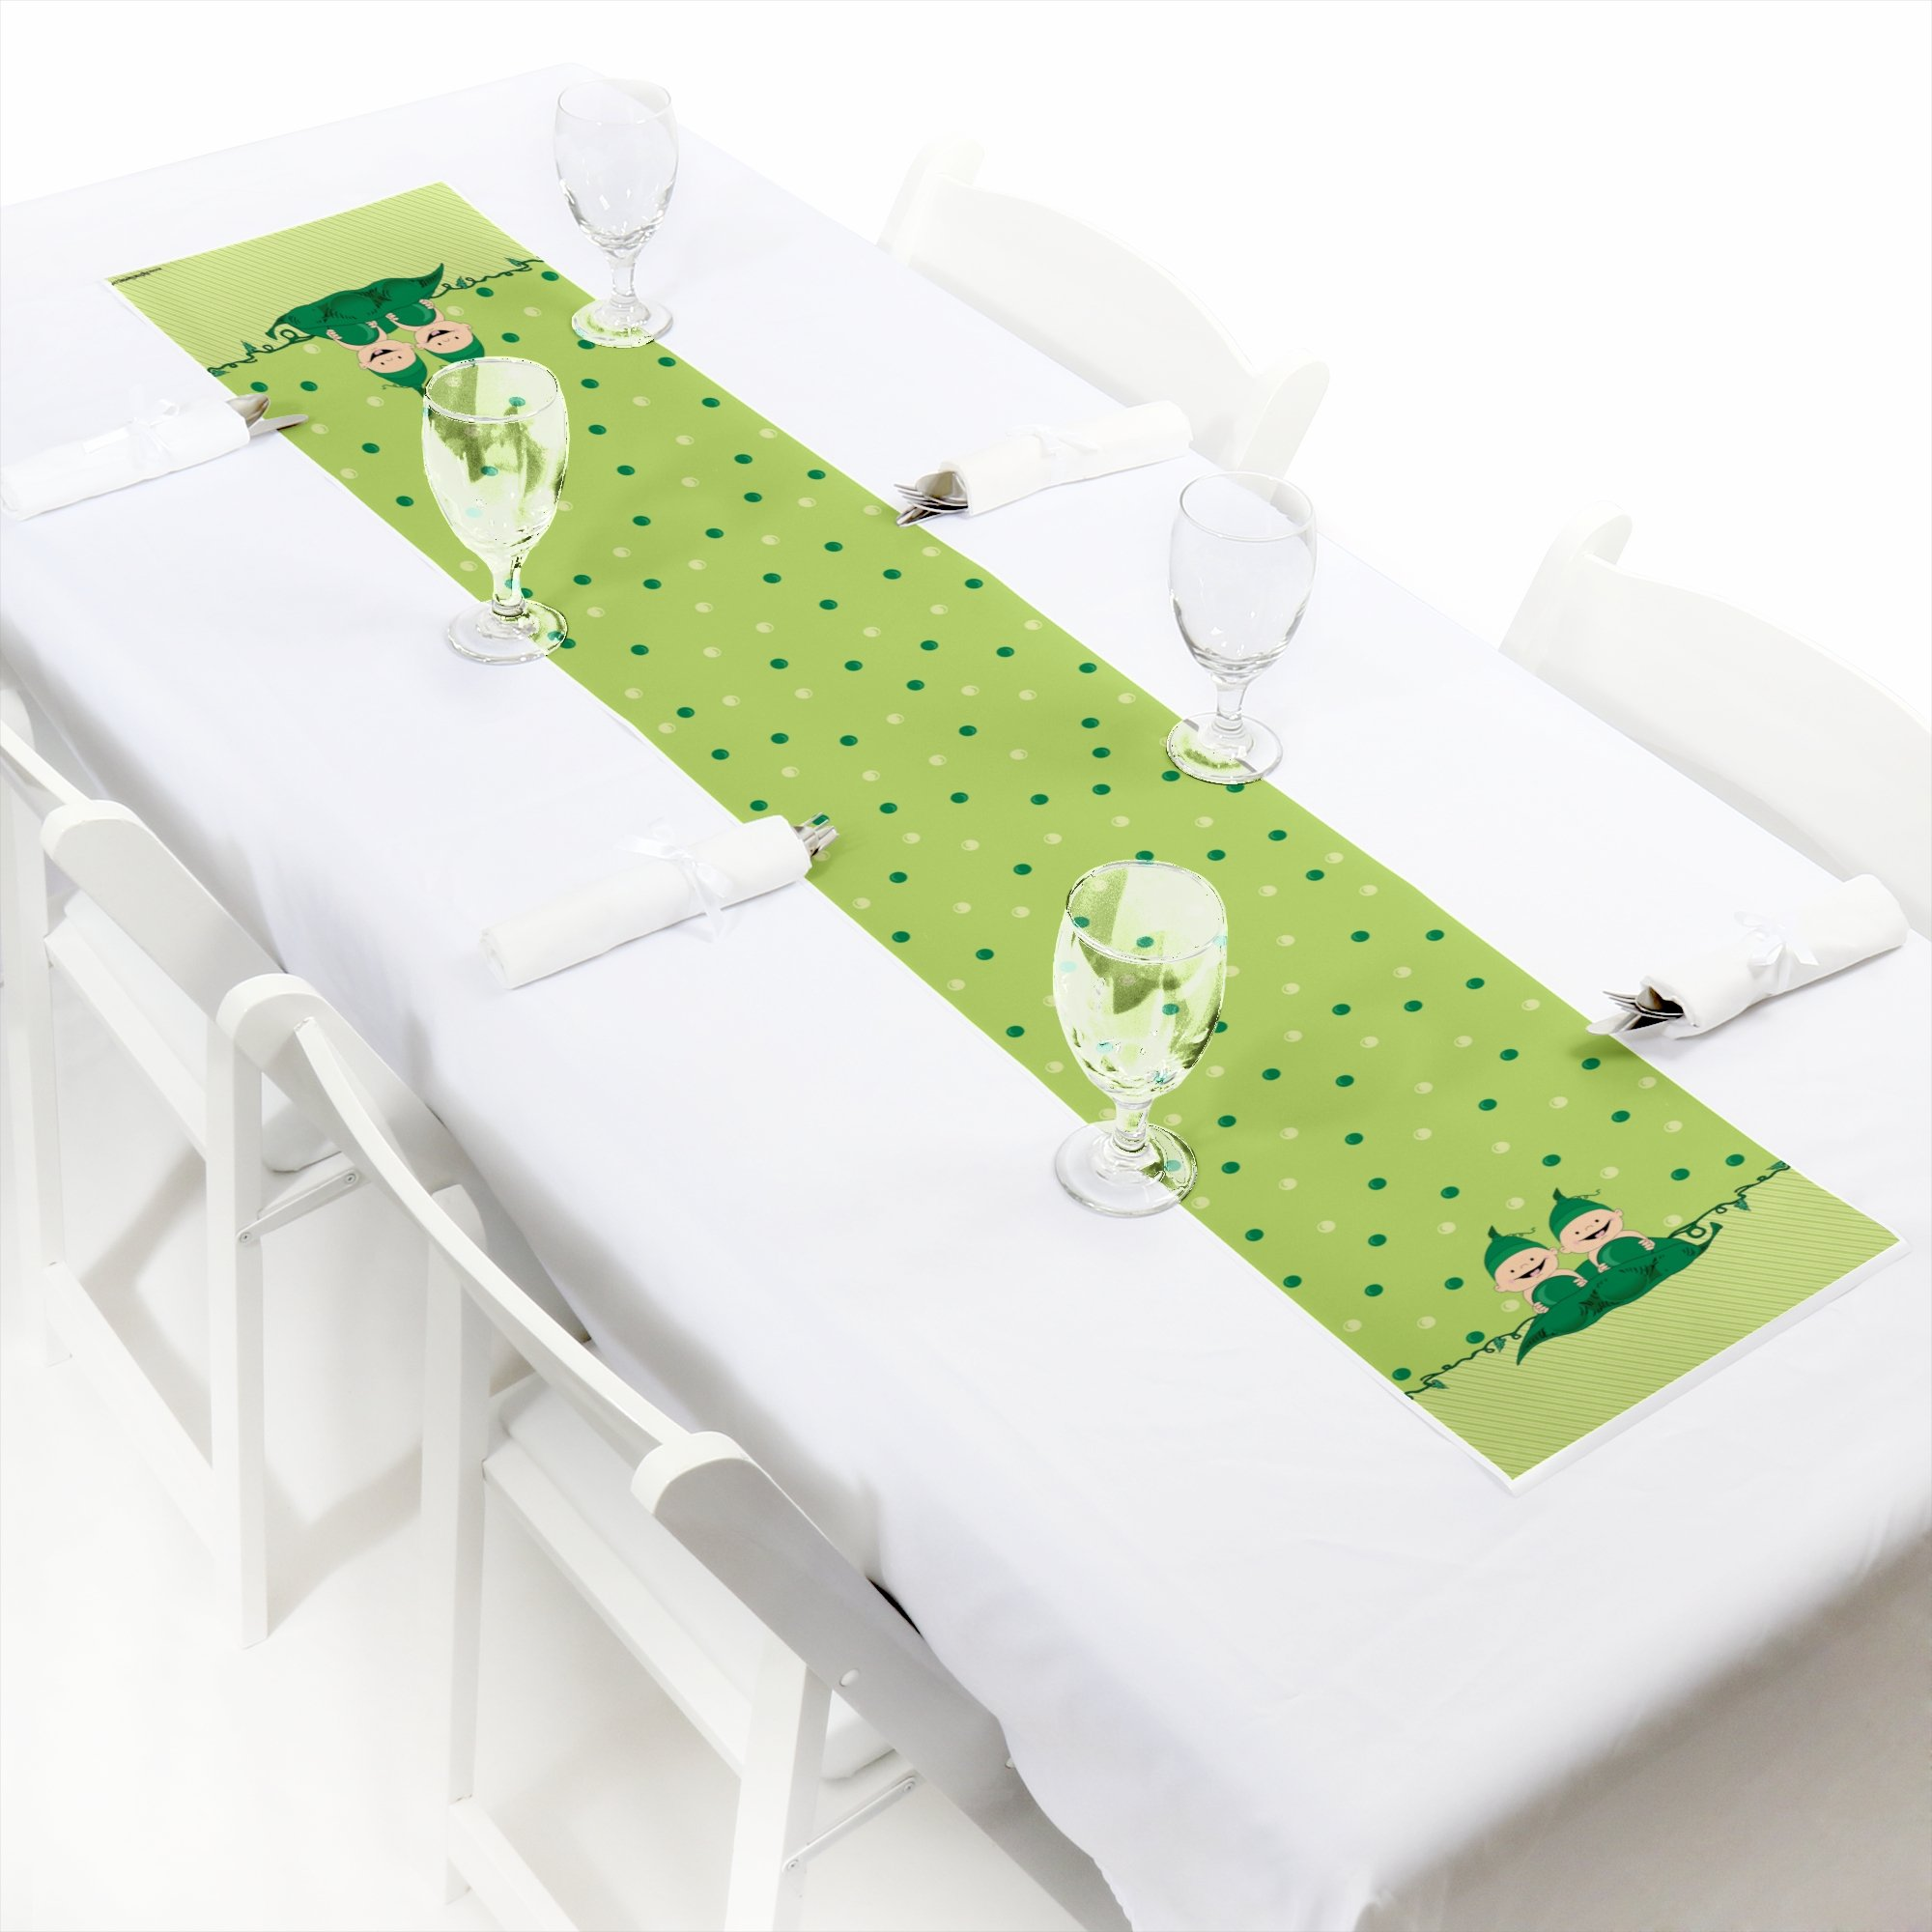 Big Dot of Happiness Twins Two Peas in a Pod - Petite Baby Shower or Birthday Party Paper Table Runner - 12 x 60 inches by Big Dot of Happiness